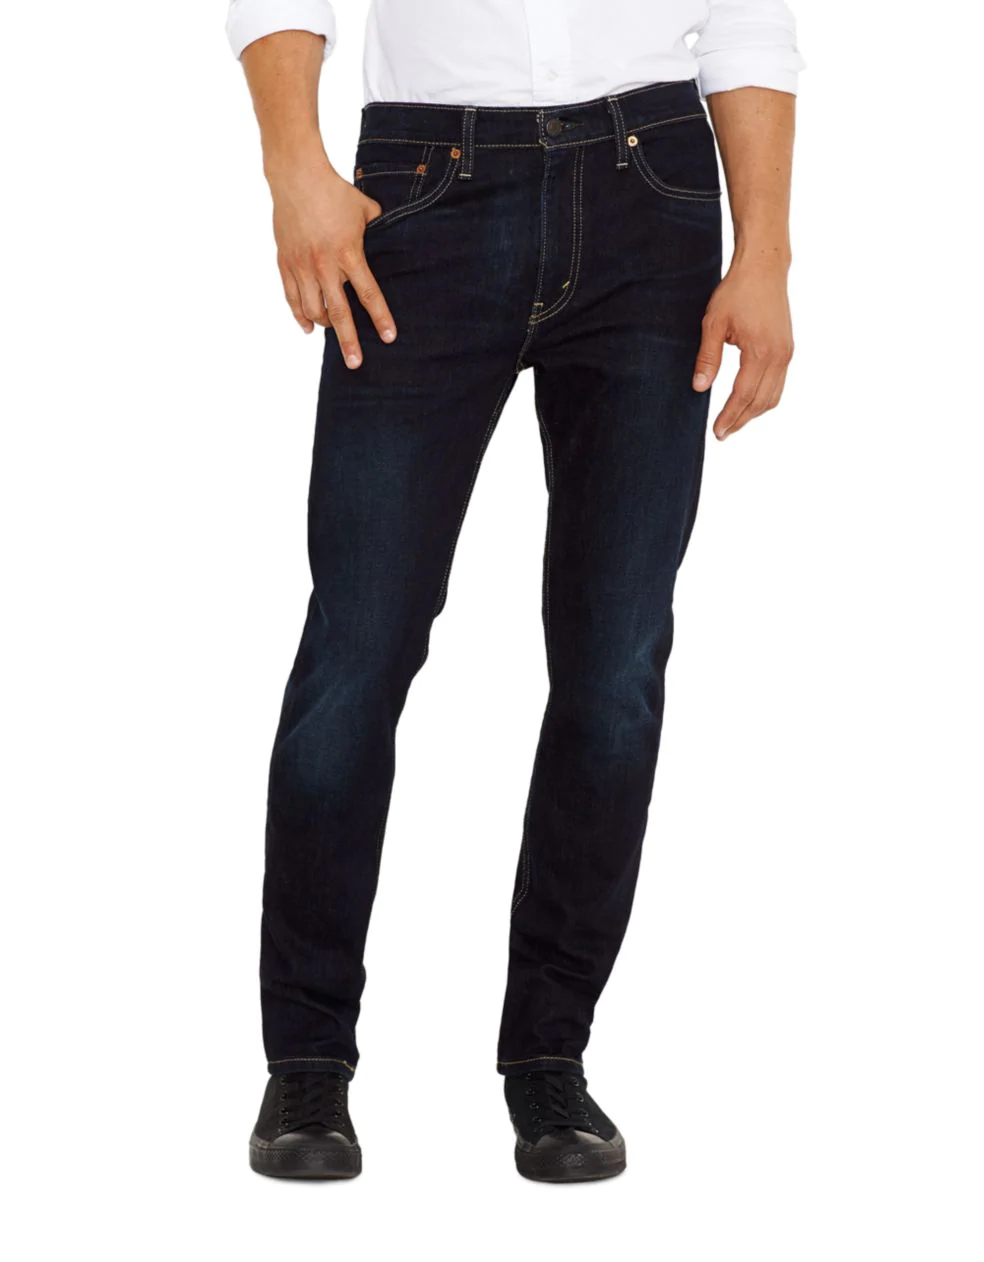 Levis Mens 510 Skinny Fit Jean - Nevermind